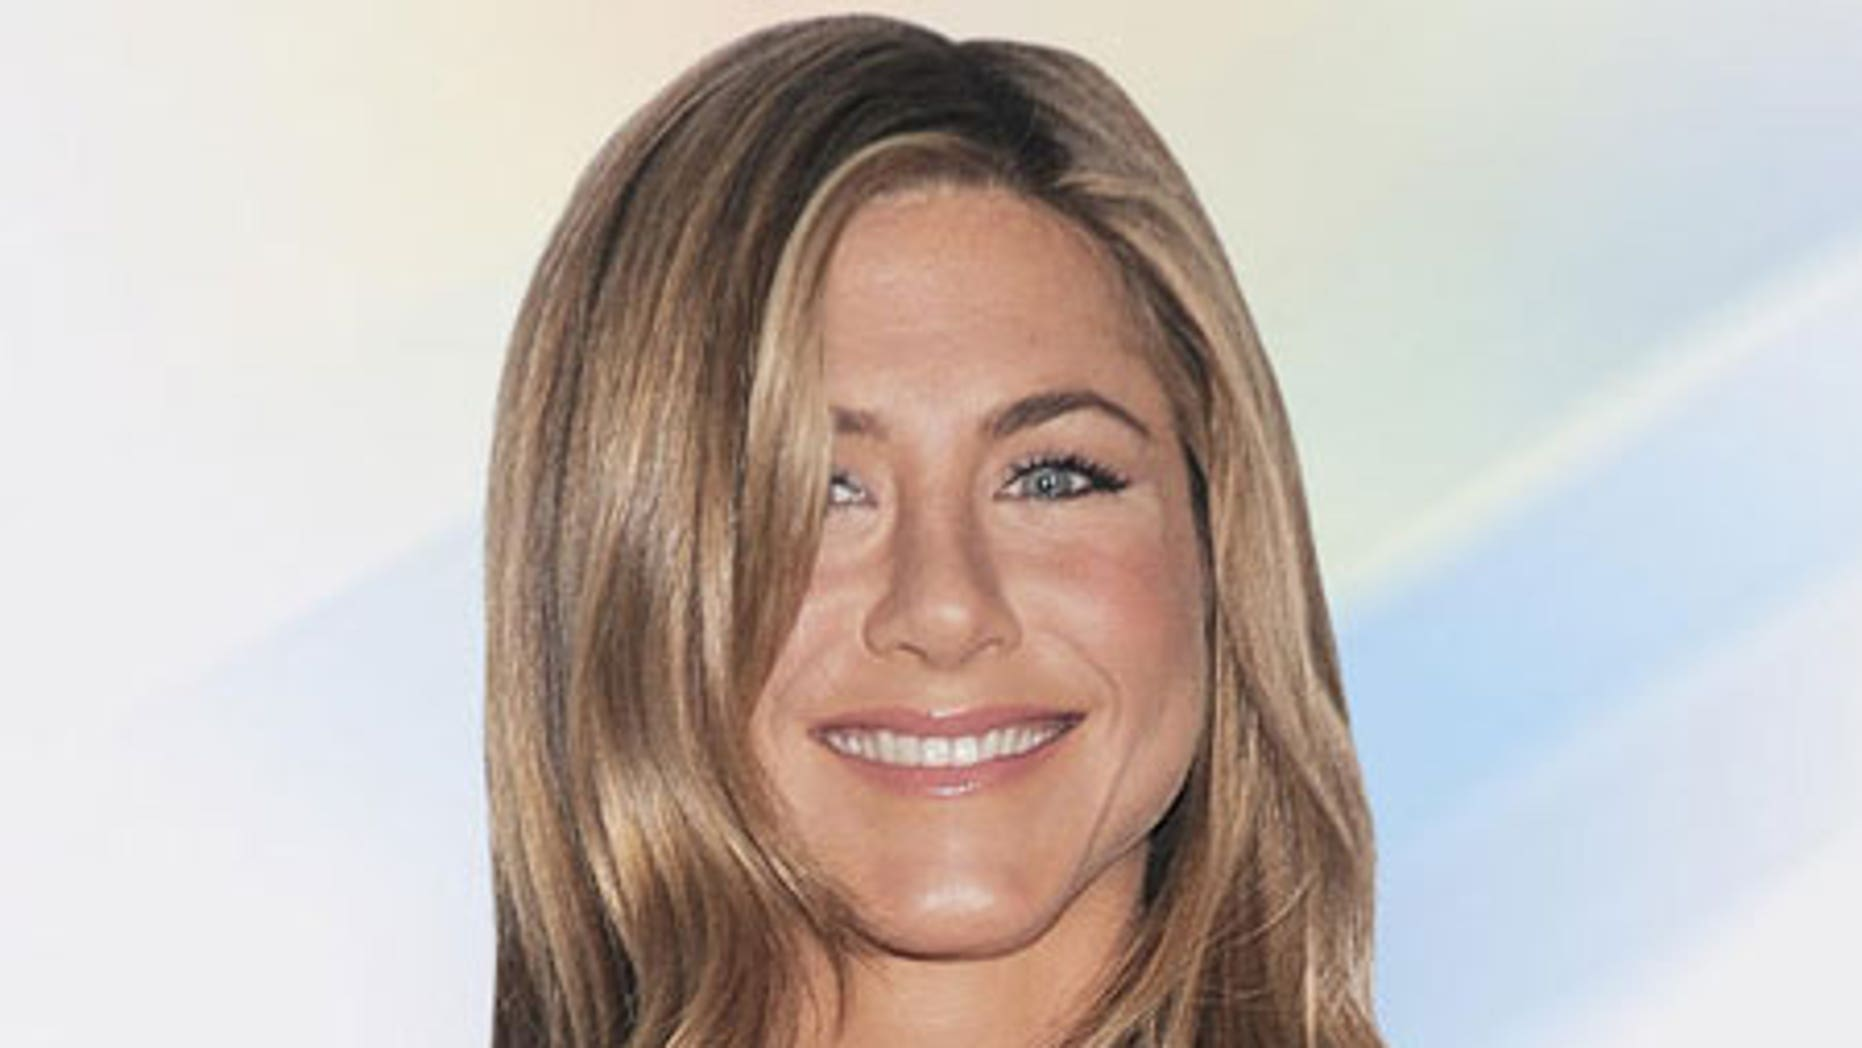 Jennifer Aniston must be all smiles knowing she won't have to fly solo at the Oscars this year.